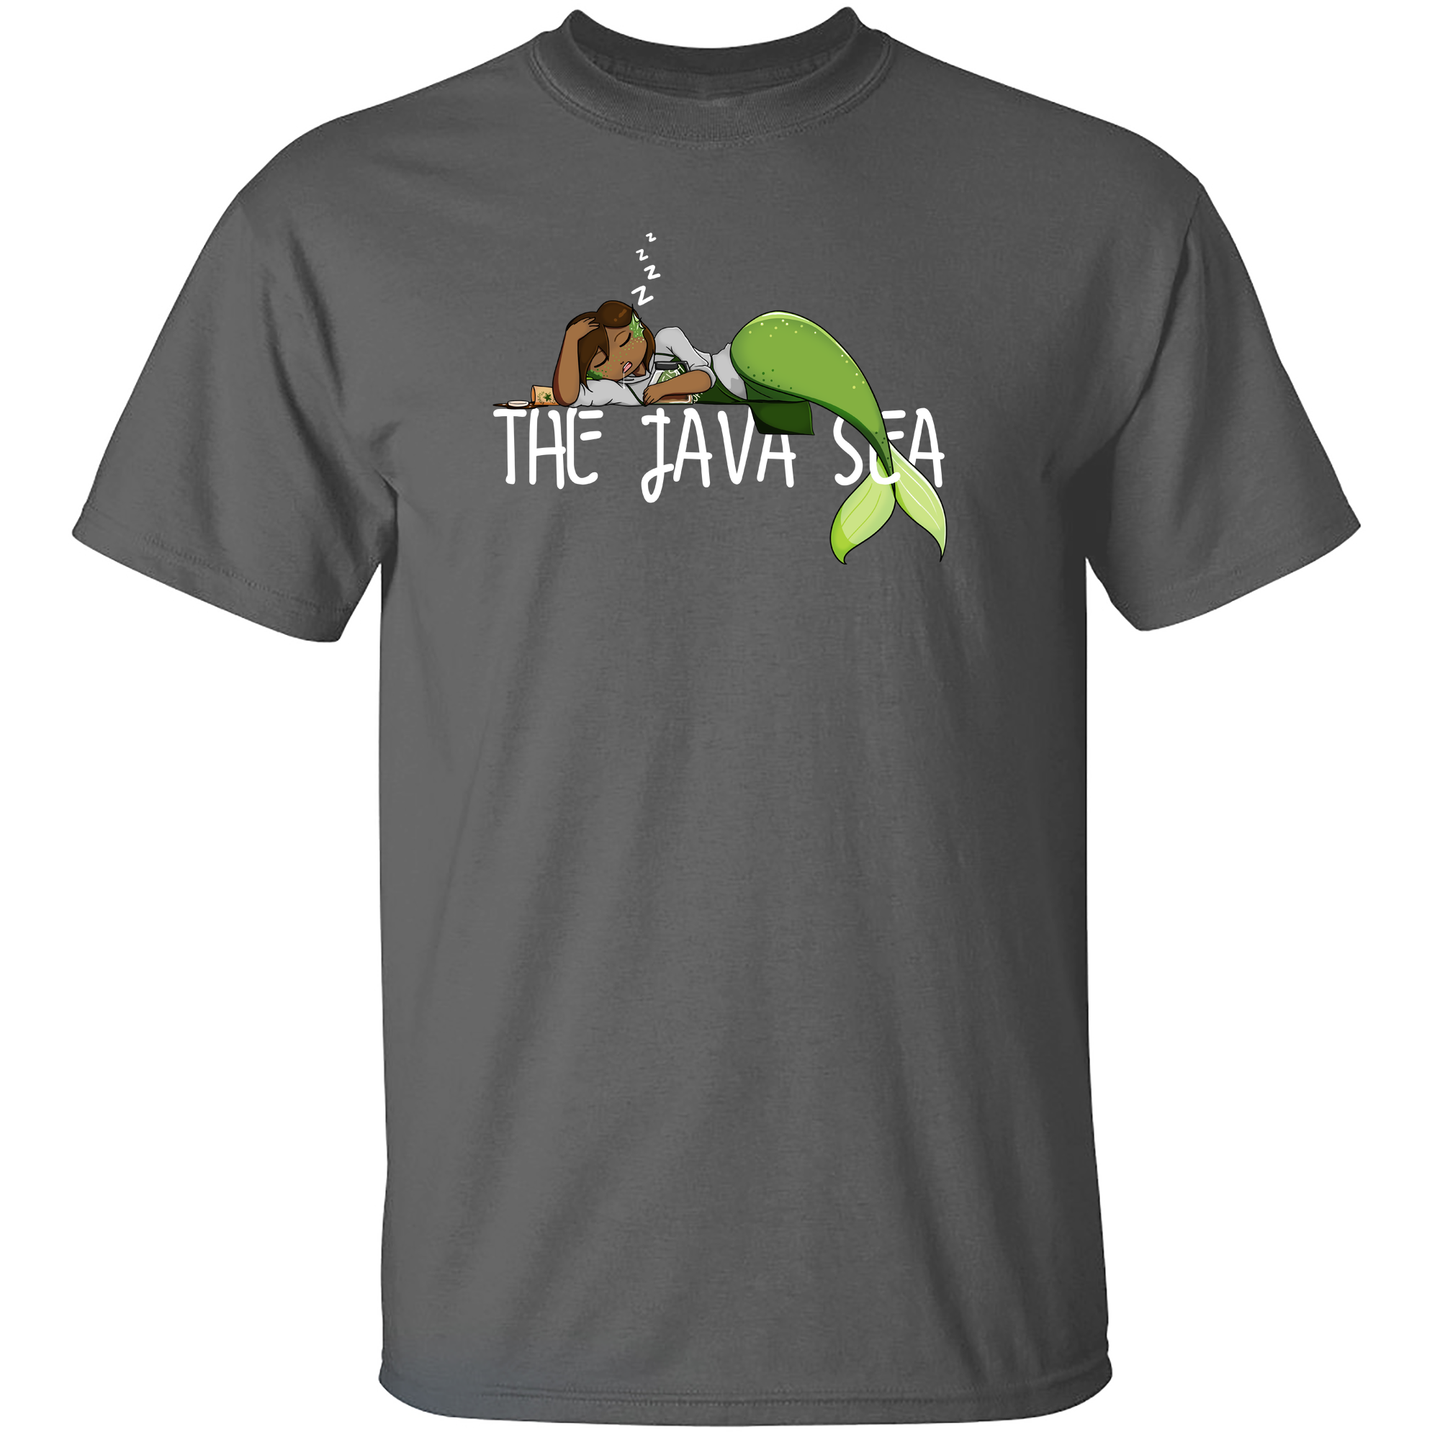 The Java Sea - Mermaid Pun T-Shirt